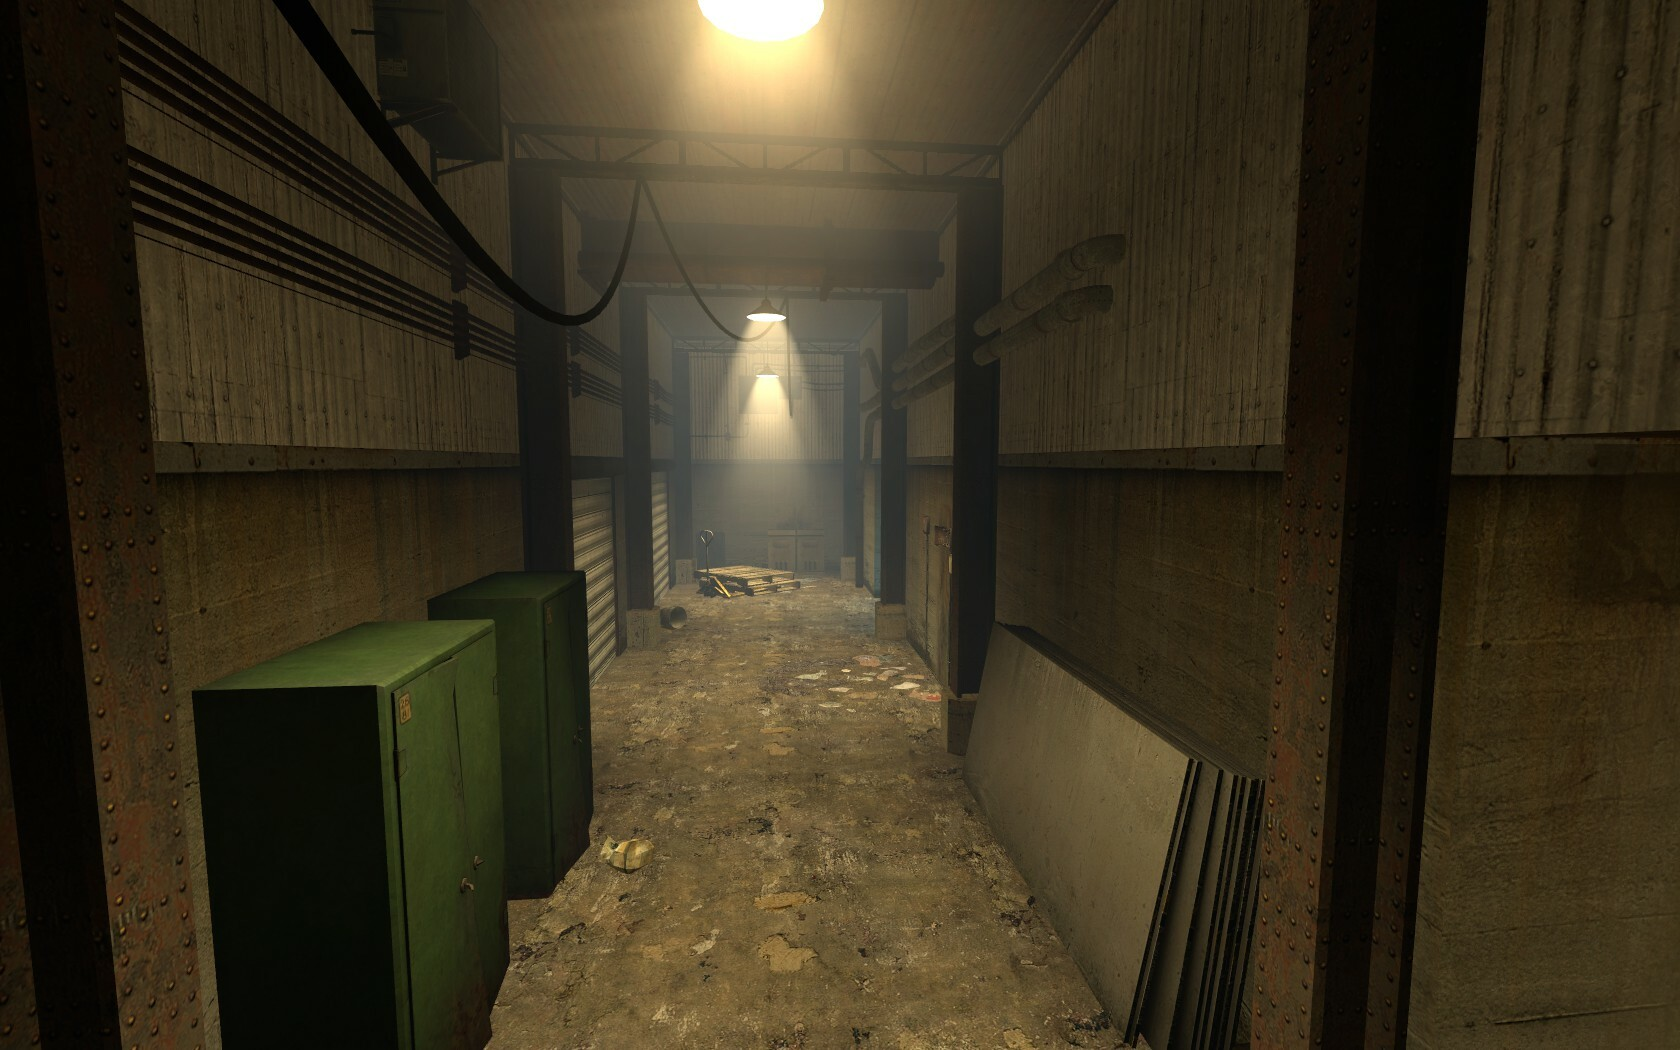 The floor in this corridor is clear as the player needs to move through the area at a fast pace. The props at the end help signal a change of direction for the player.